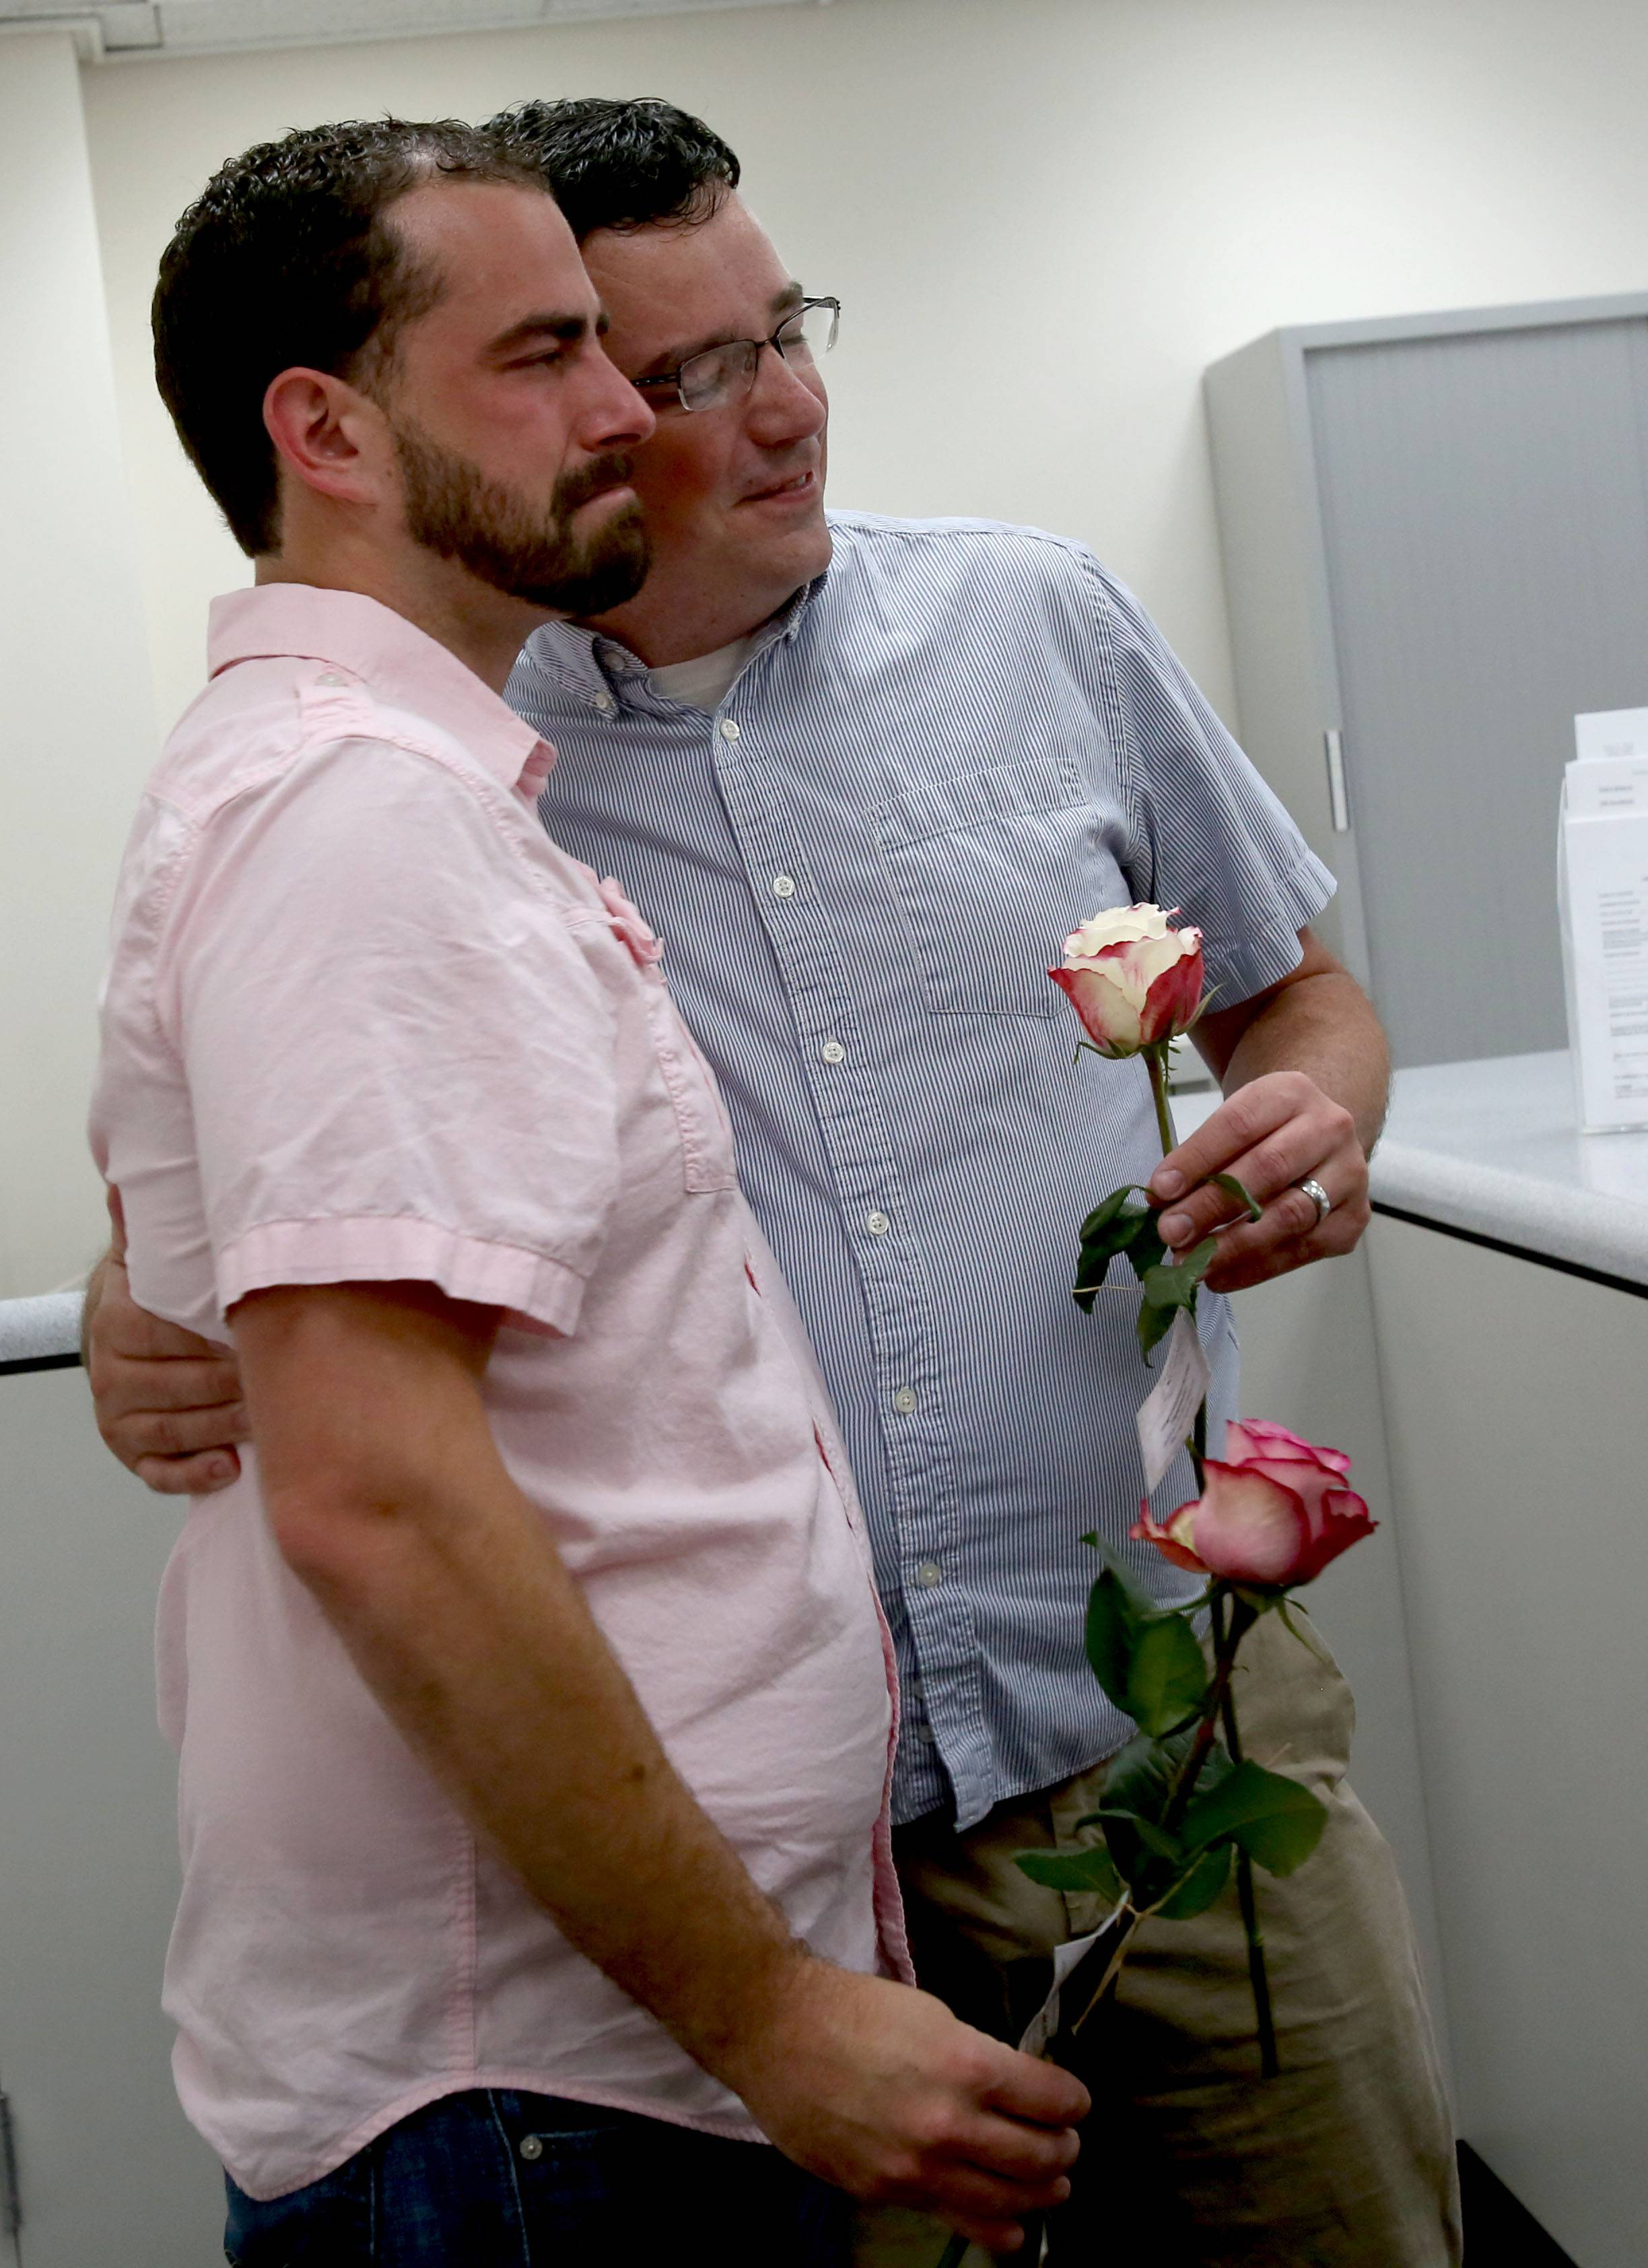 Mike Gary, left and Michael Cannon, right, of Hanover Park, share an emotional hug before converting their civil union to a marriage license Monday at the DuPage County Clerk's office in Wheaton.